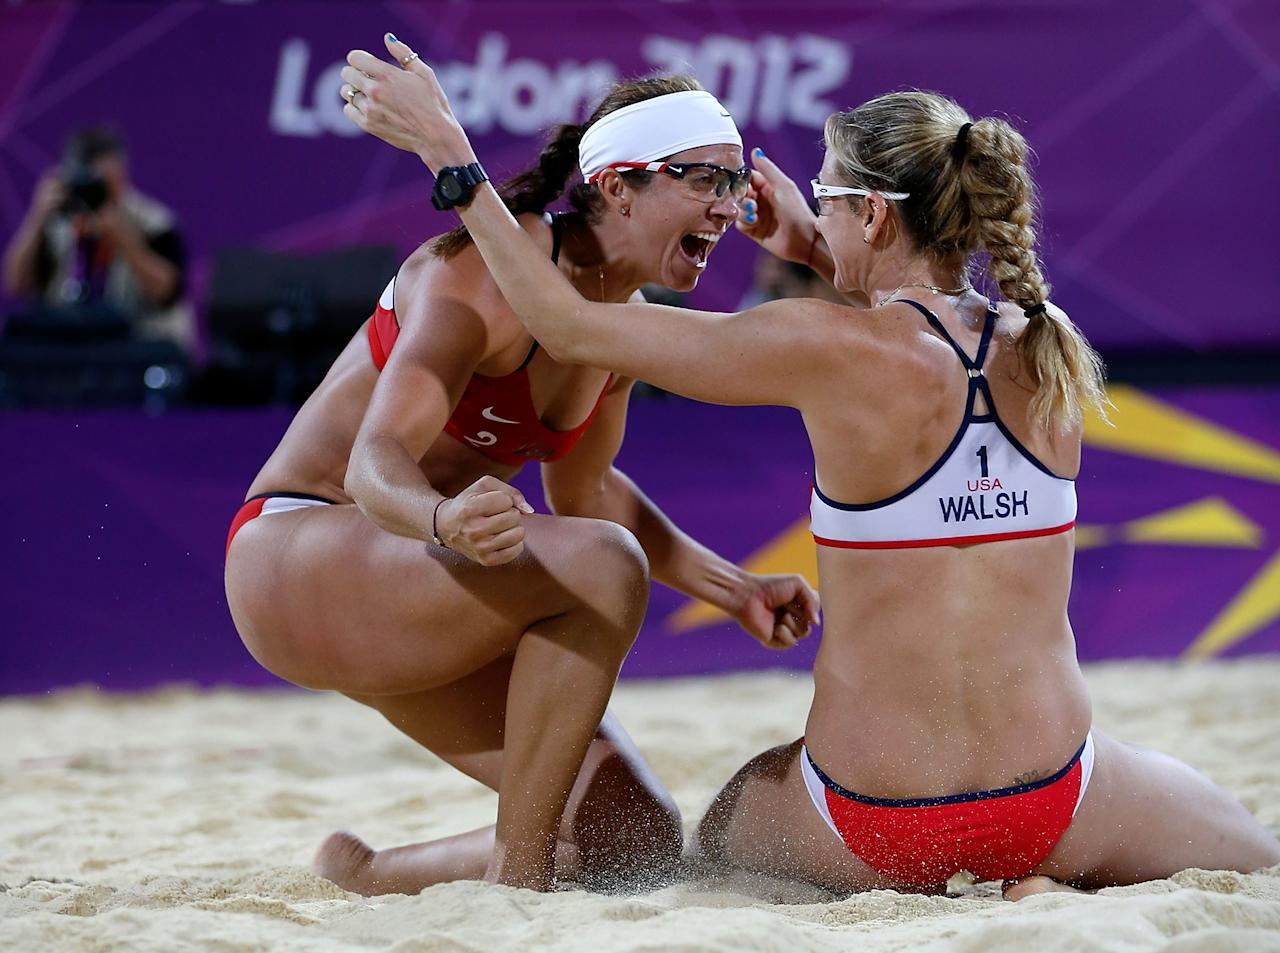 LONDON, ENGLAND - AUGUST 08:  Kerri Walsh Jennings (R) and Misty May-Treanor of the United States celebrate winning the Gold medal in the Women's Beach Volleyball Gold medal match against the United States on Day 12 of the London 2012 Olympic Games at the Horse Guard's Parade on August 8, 2012 in London, England.  (Photo by Jamie Squire/Getty Images)